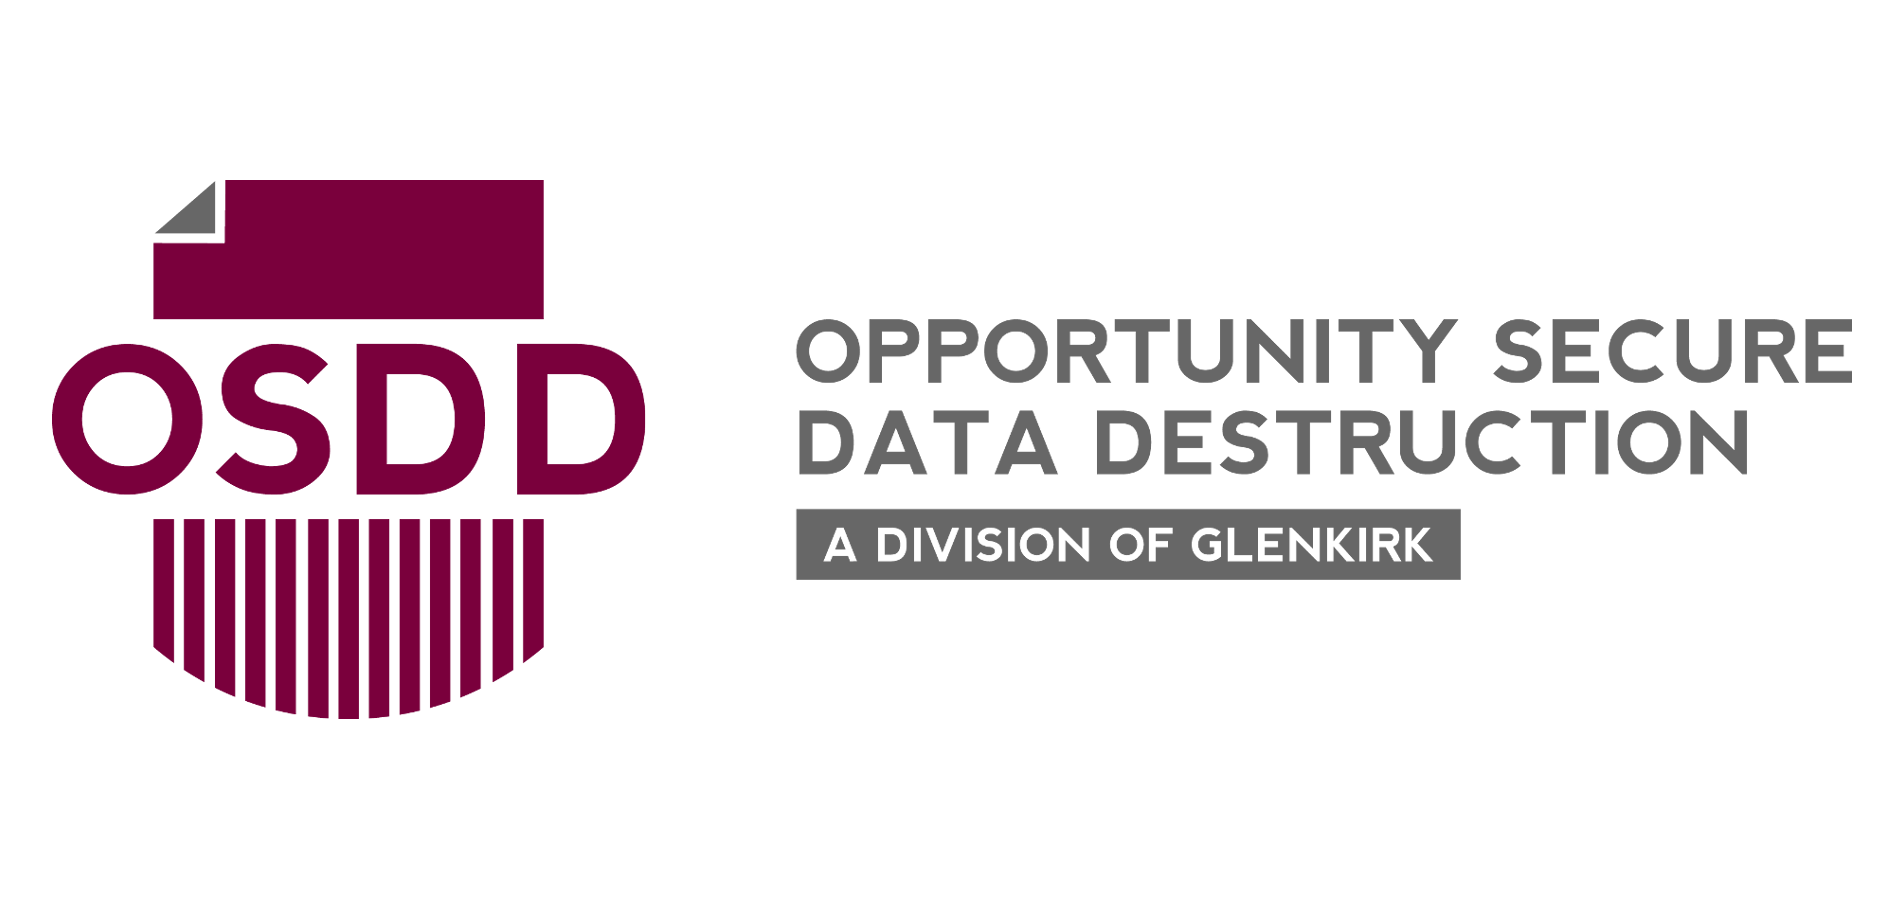 Glenkirk - Opportunity Secure Data Destruction logo